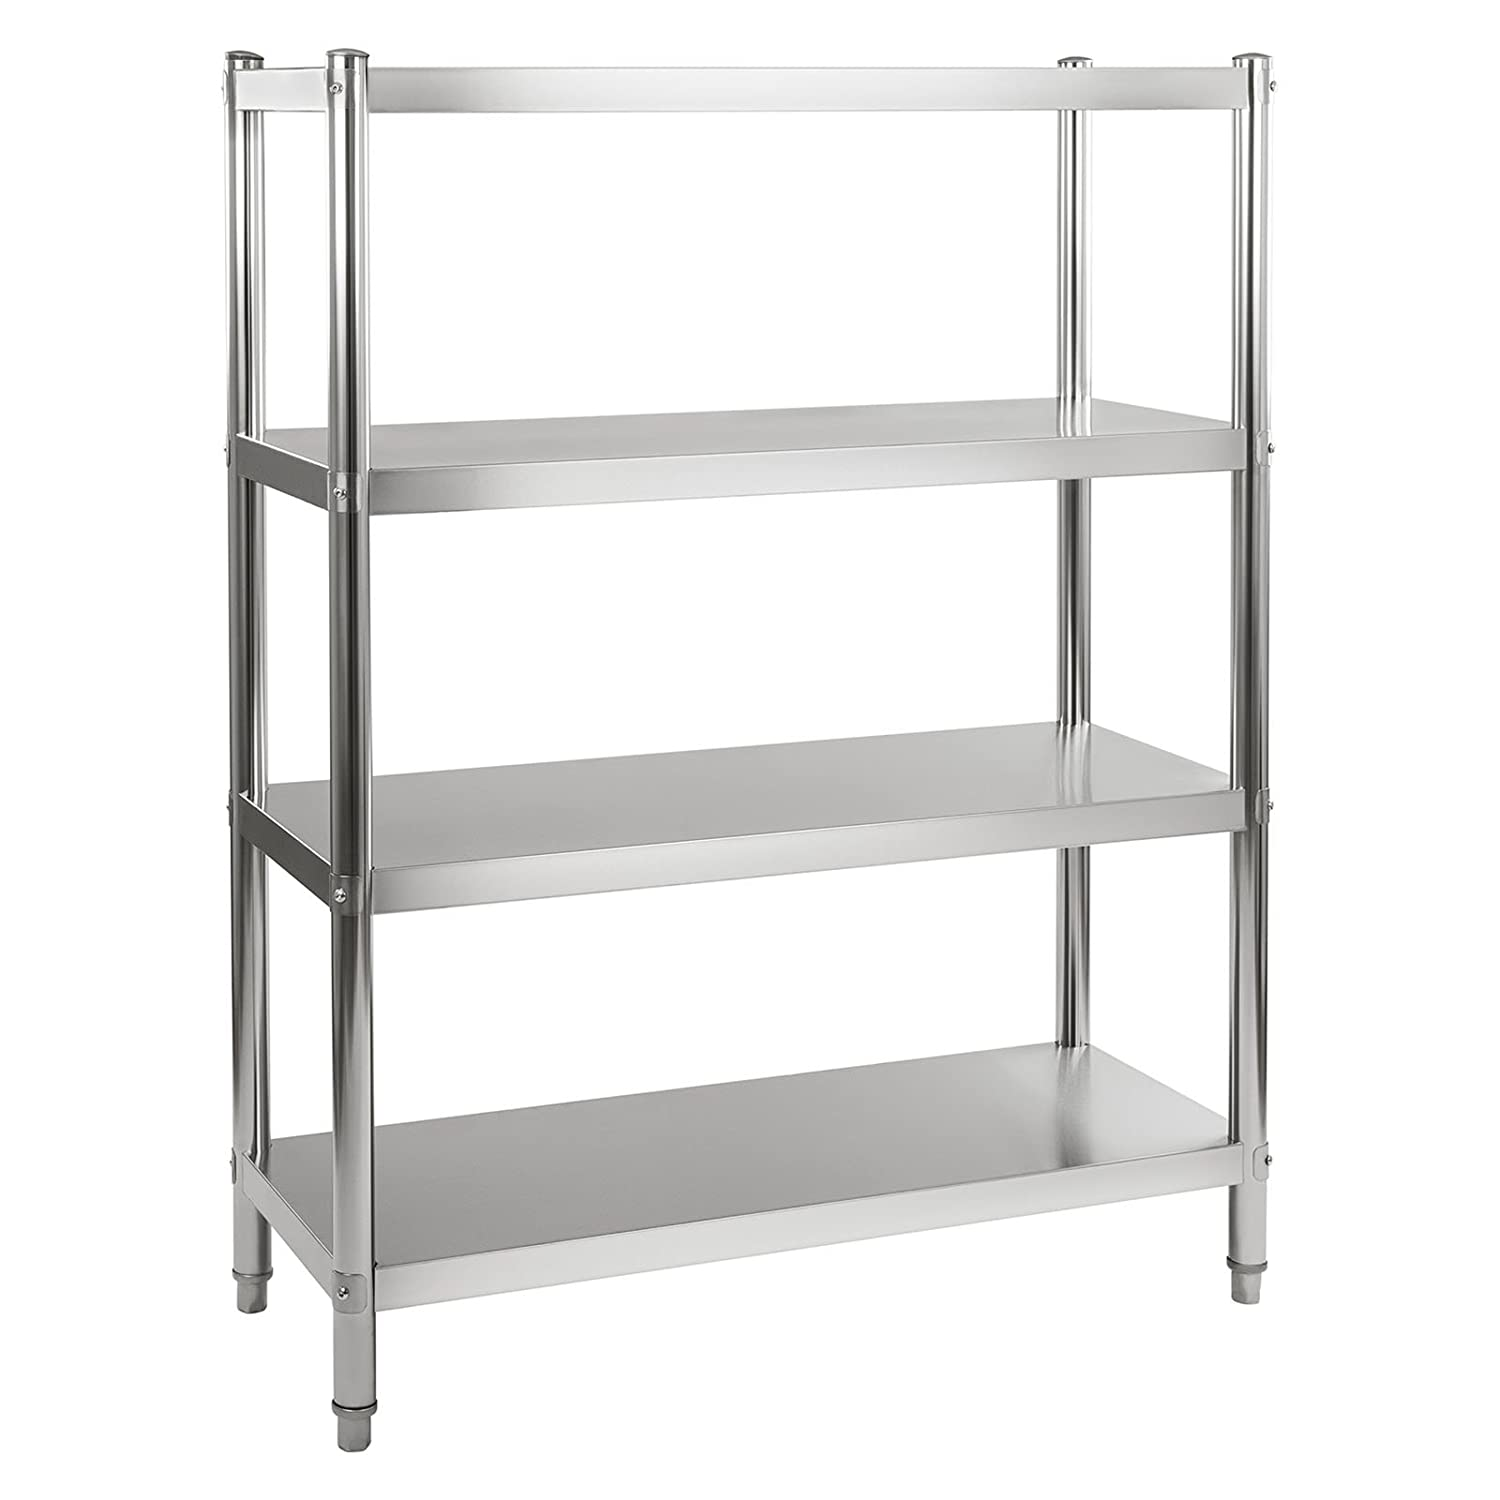 Royal Catering  Rcer 120  Stainless Steel Shelving  Load